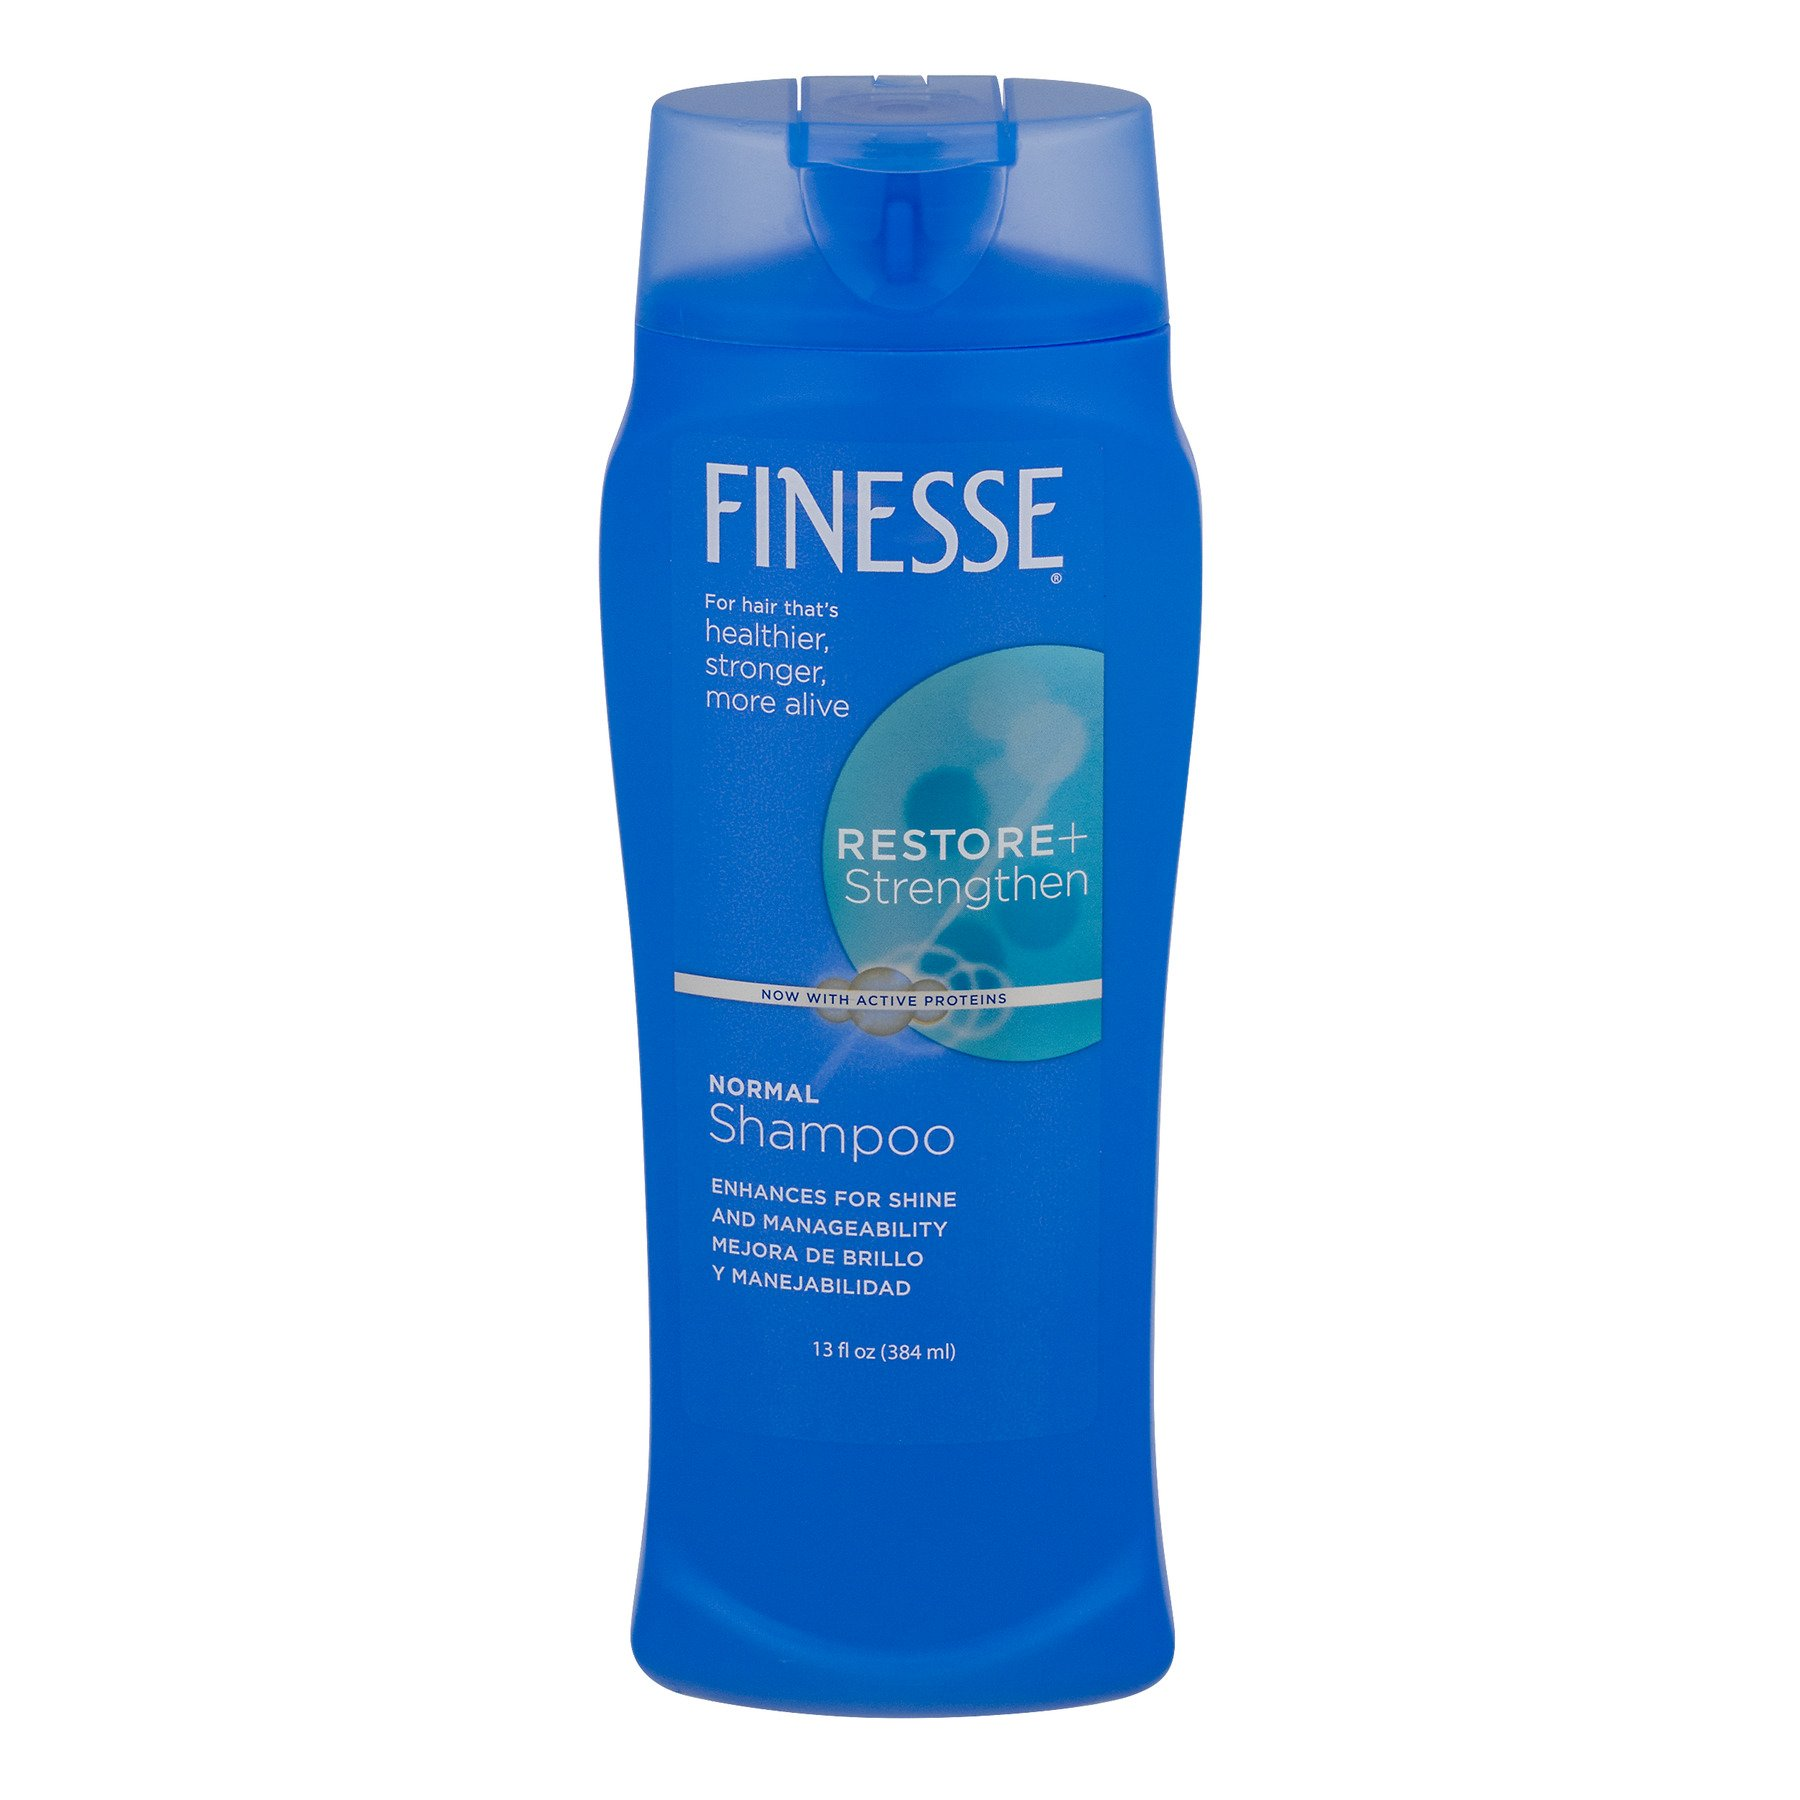 Finesse Restore + Strengthen, Shampoo 13 oz (Pack of 3)